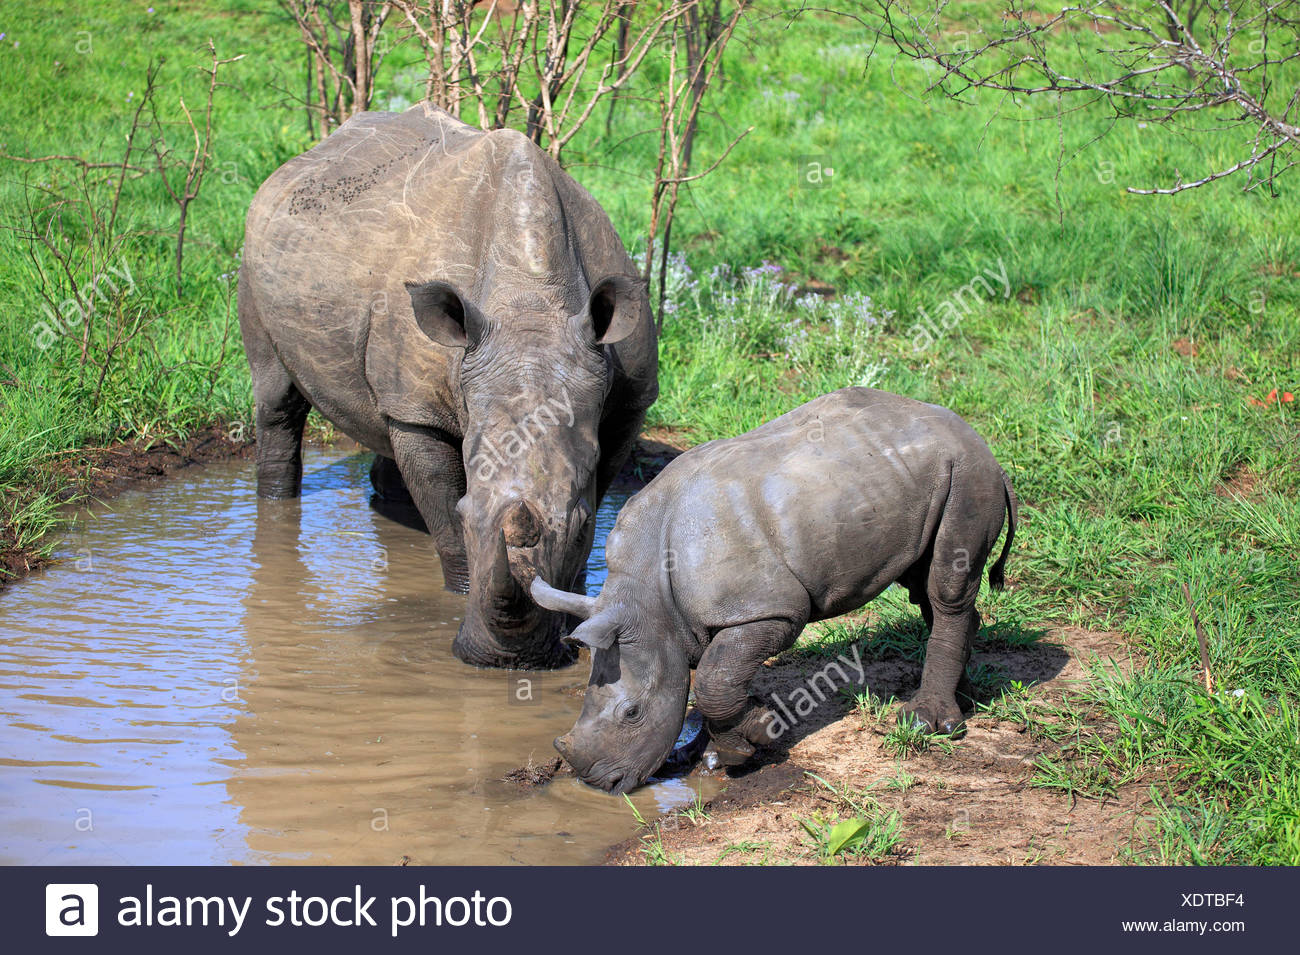 Wide-mouthed Rhinoceros, female with young, Sabi Sabi Game Reserve, Kruger national park, South Africa / (Ceratotherium simum) - Stock Image